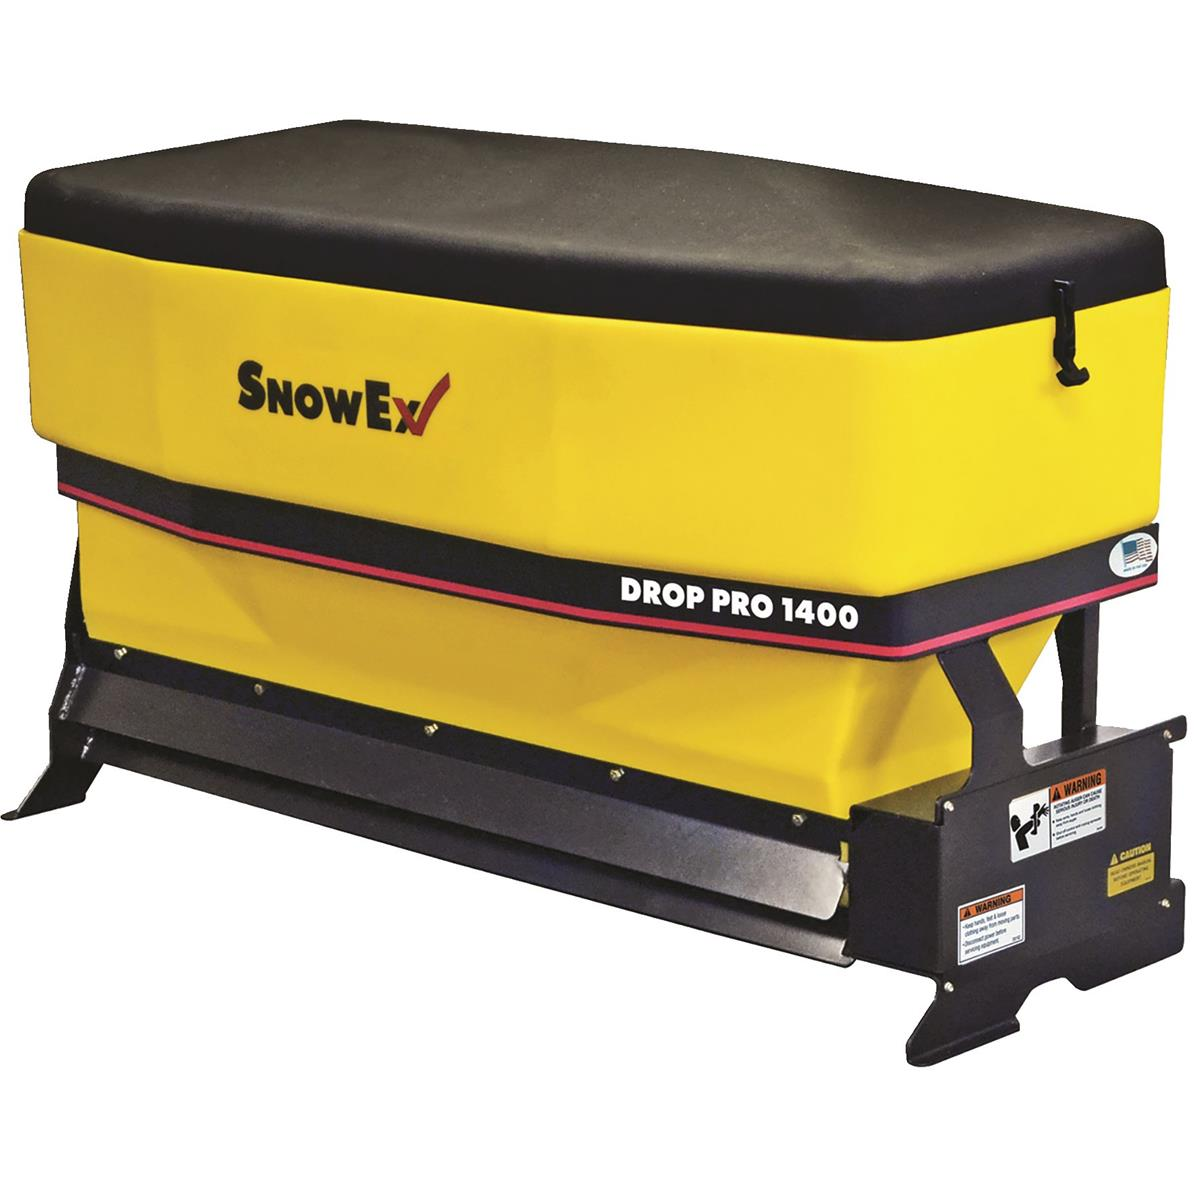 Image result for snowex Drop Pro sd-1400 1200 × 1200Images may be subject to copyright SD-1400 Drop Pro™ Drop Spreader